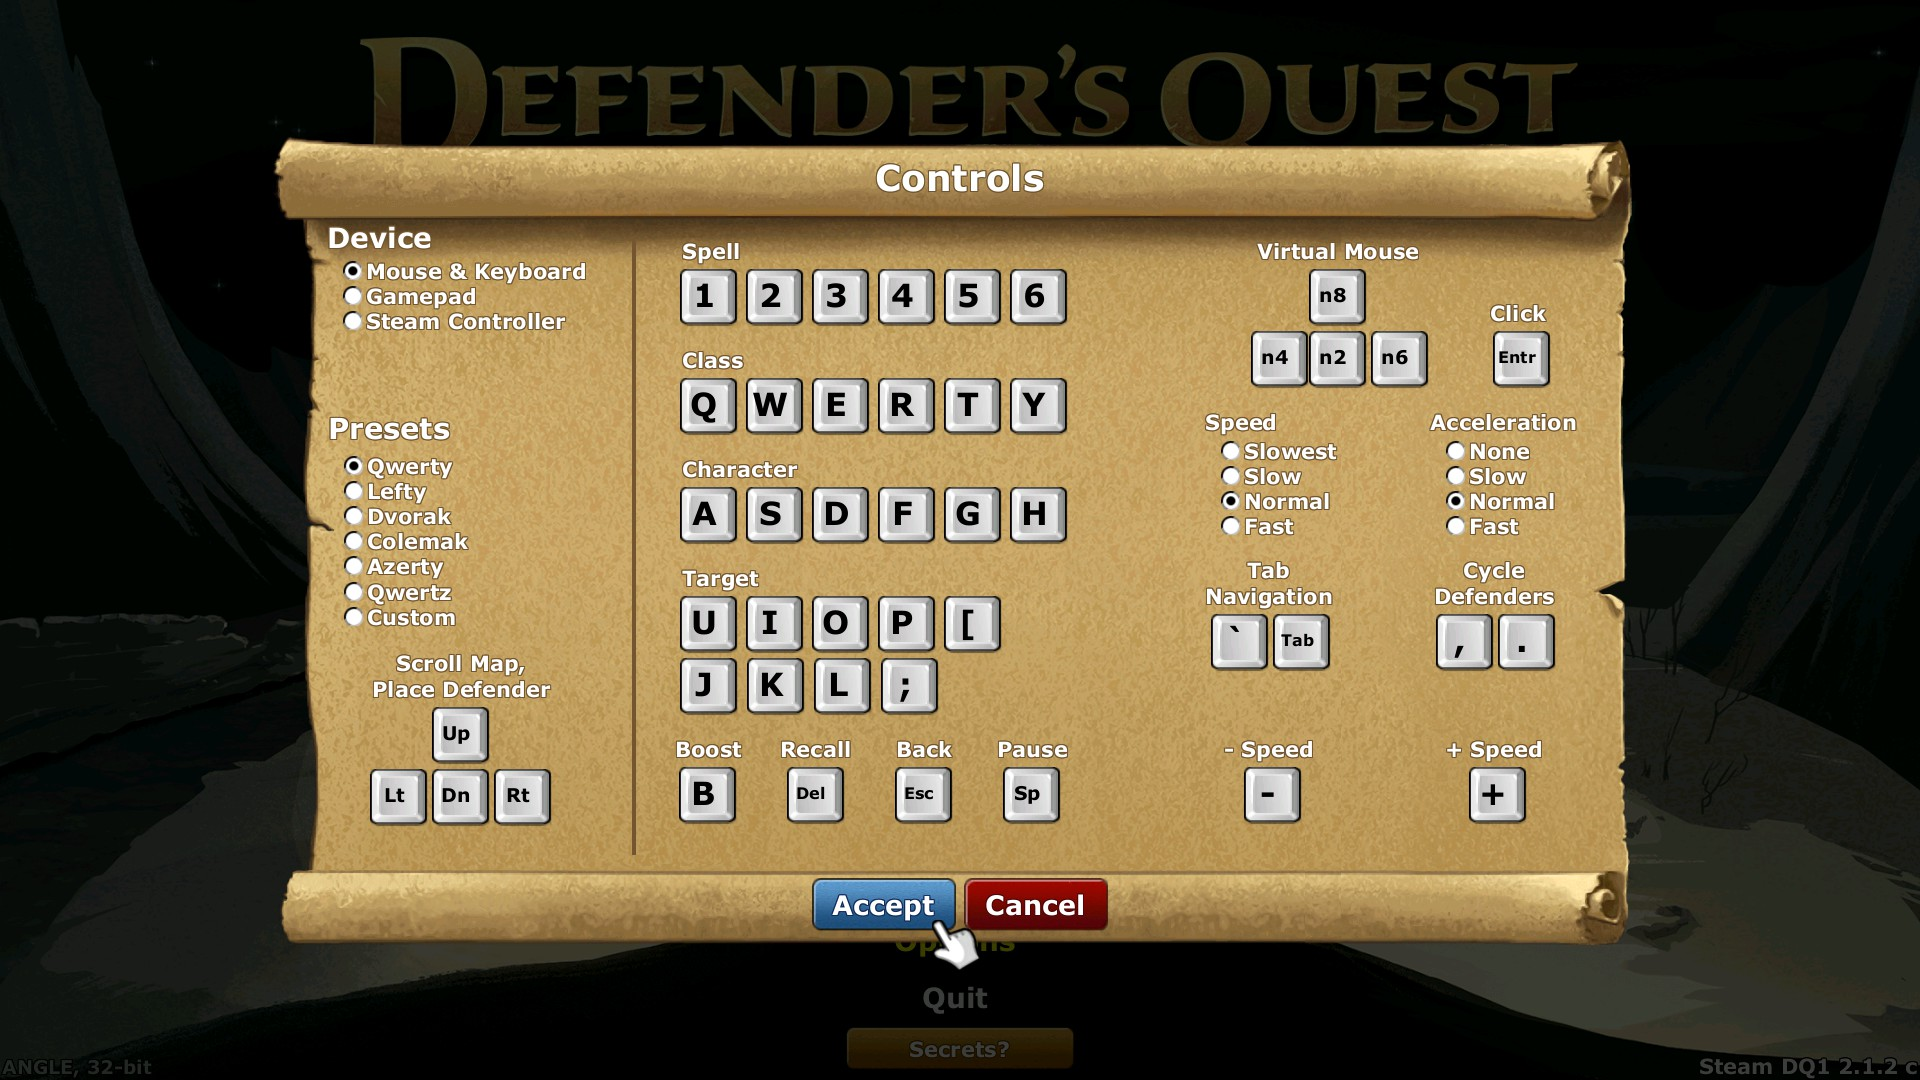 Keyboard & Mouse controls configuration screen